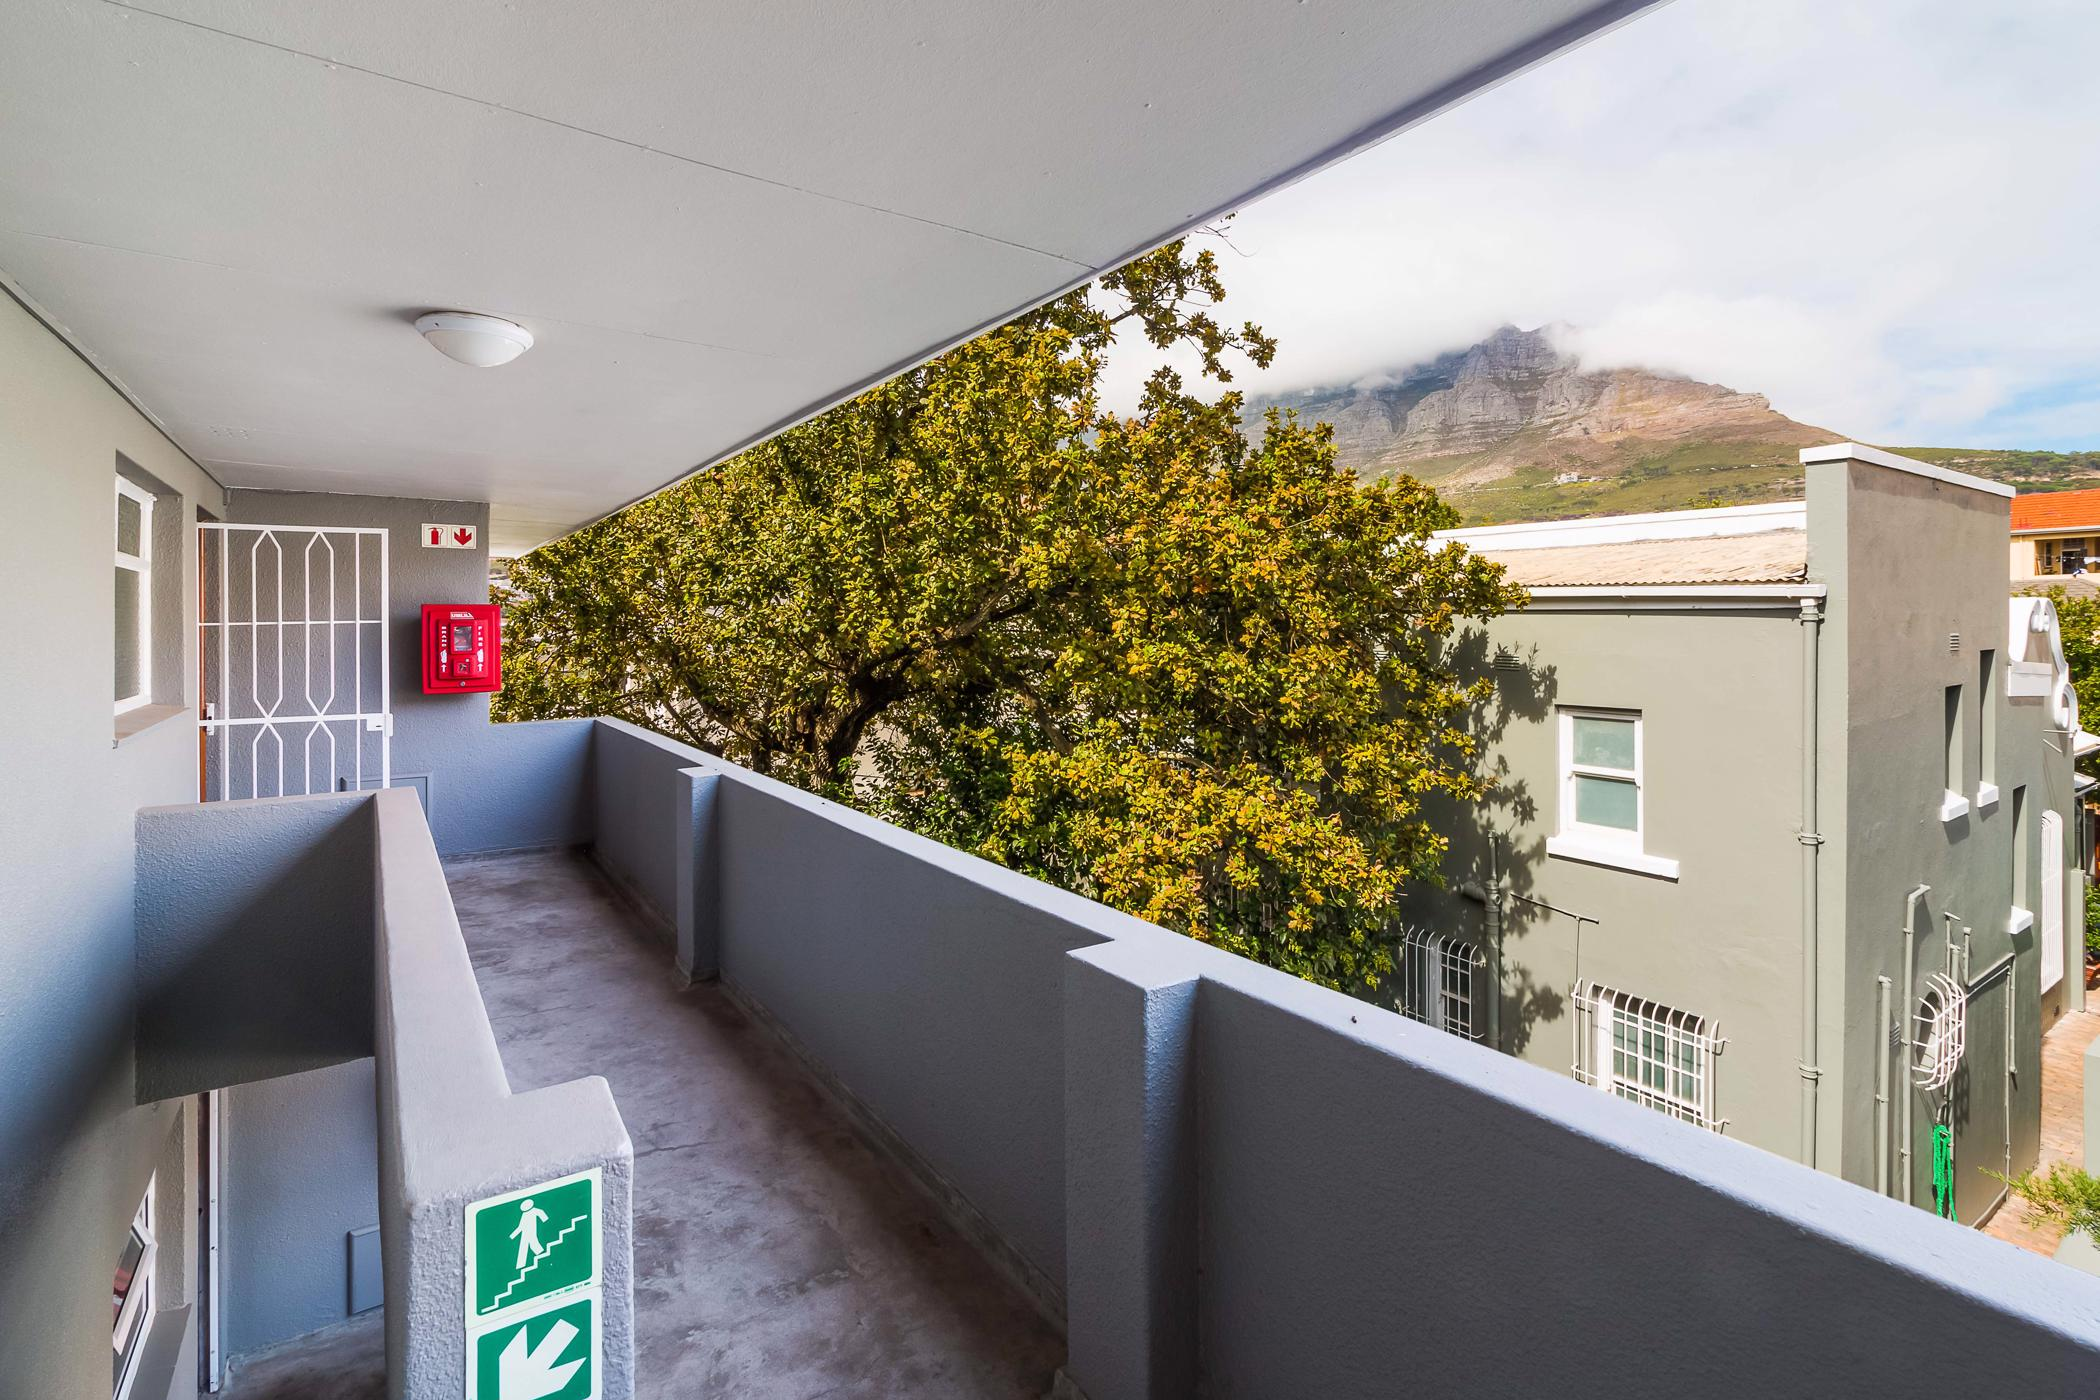 https://listing.pamgolding.co.za/images/properties/201905/1332395/H/1332395_H_1.jpg